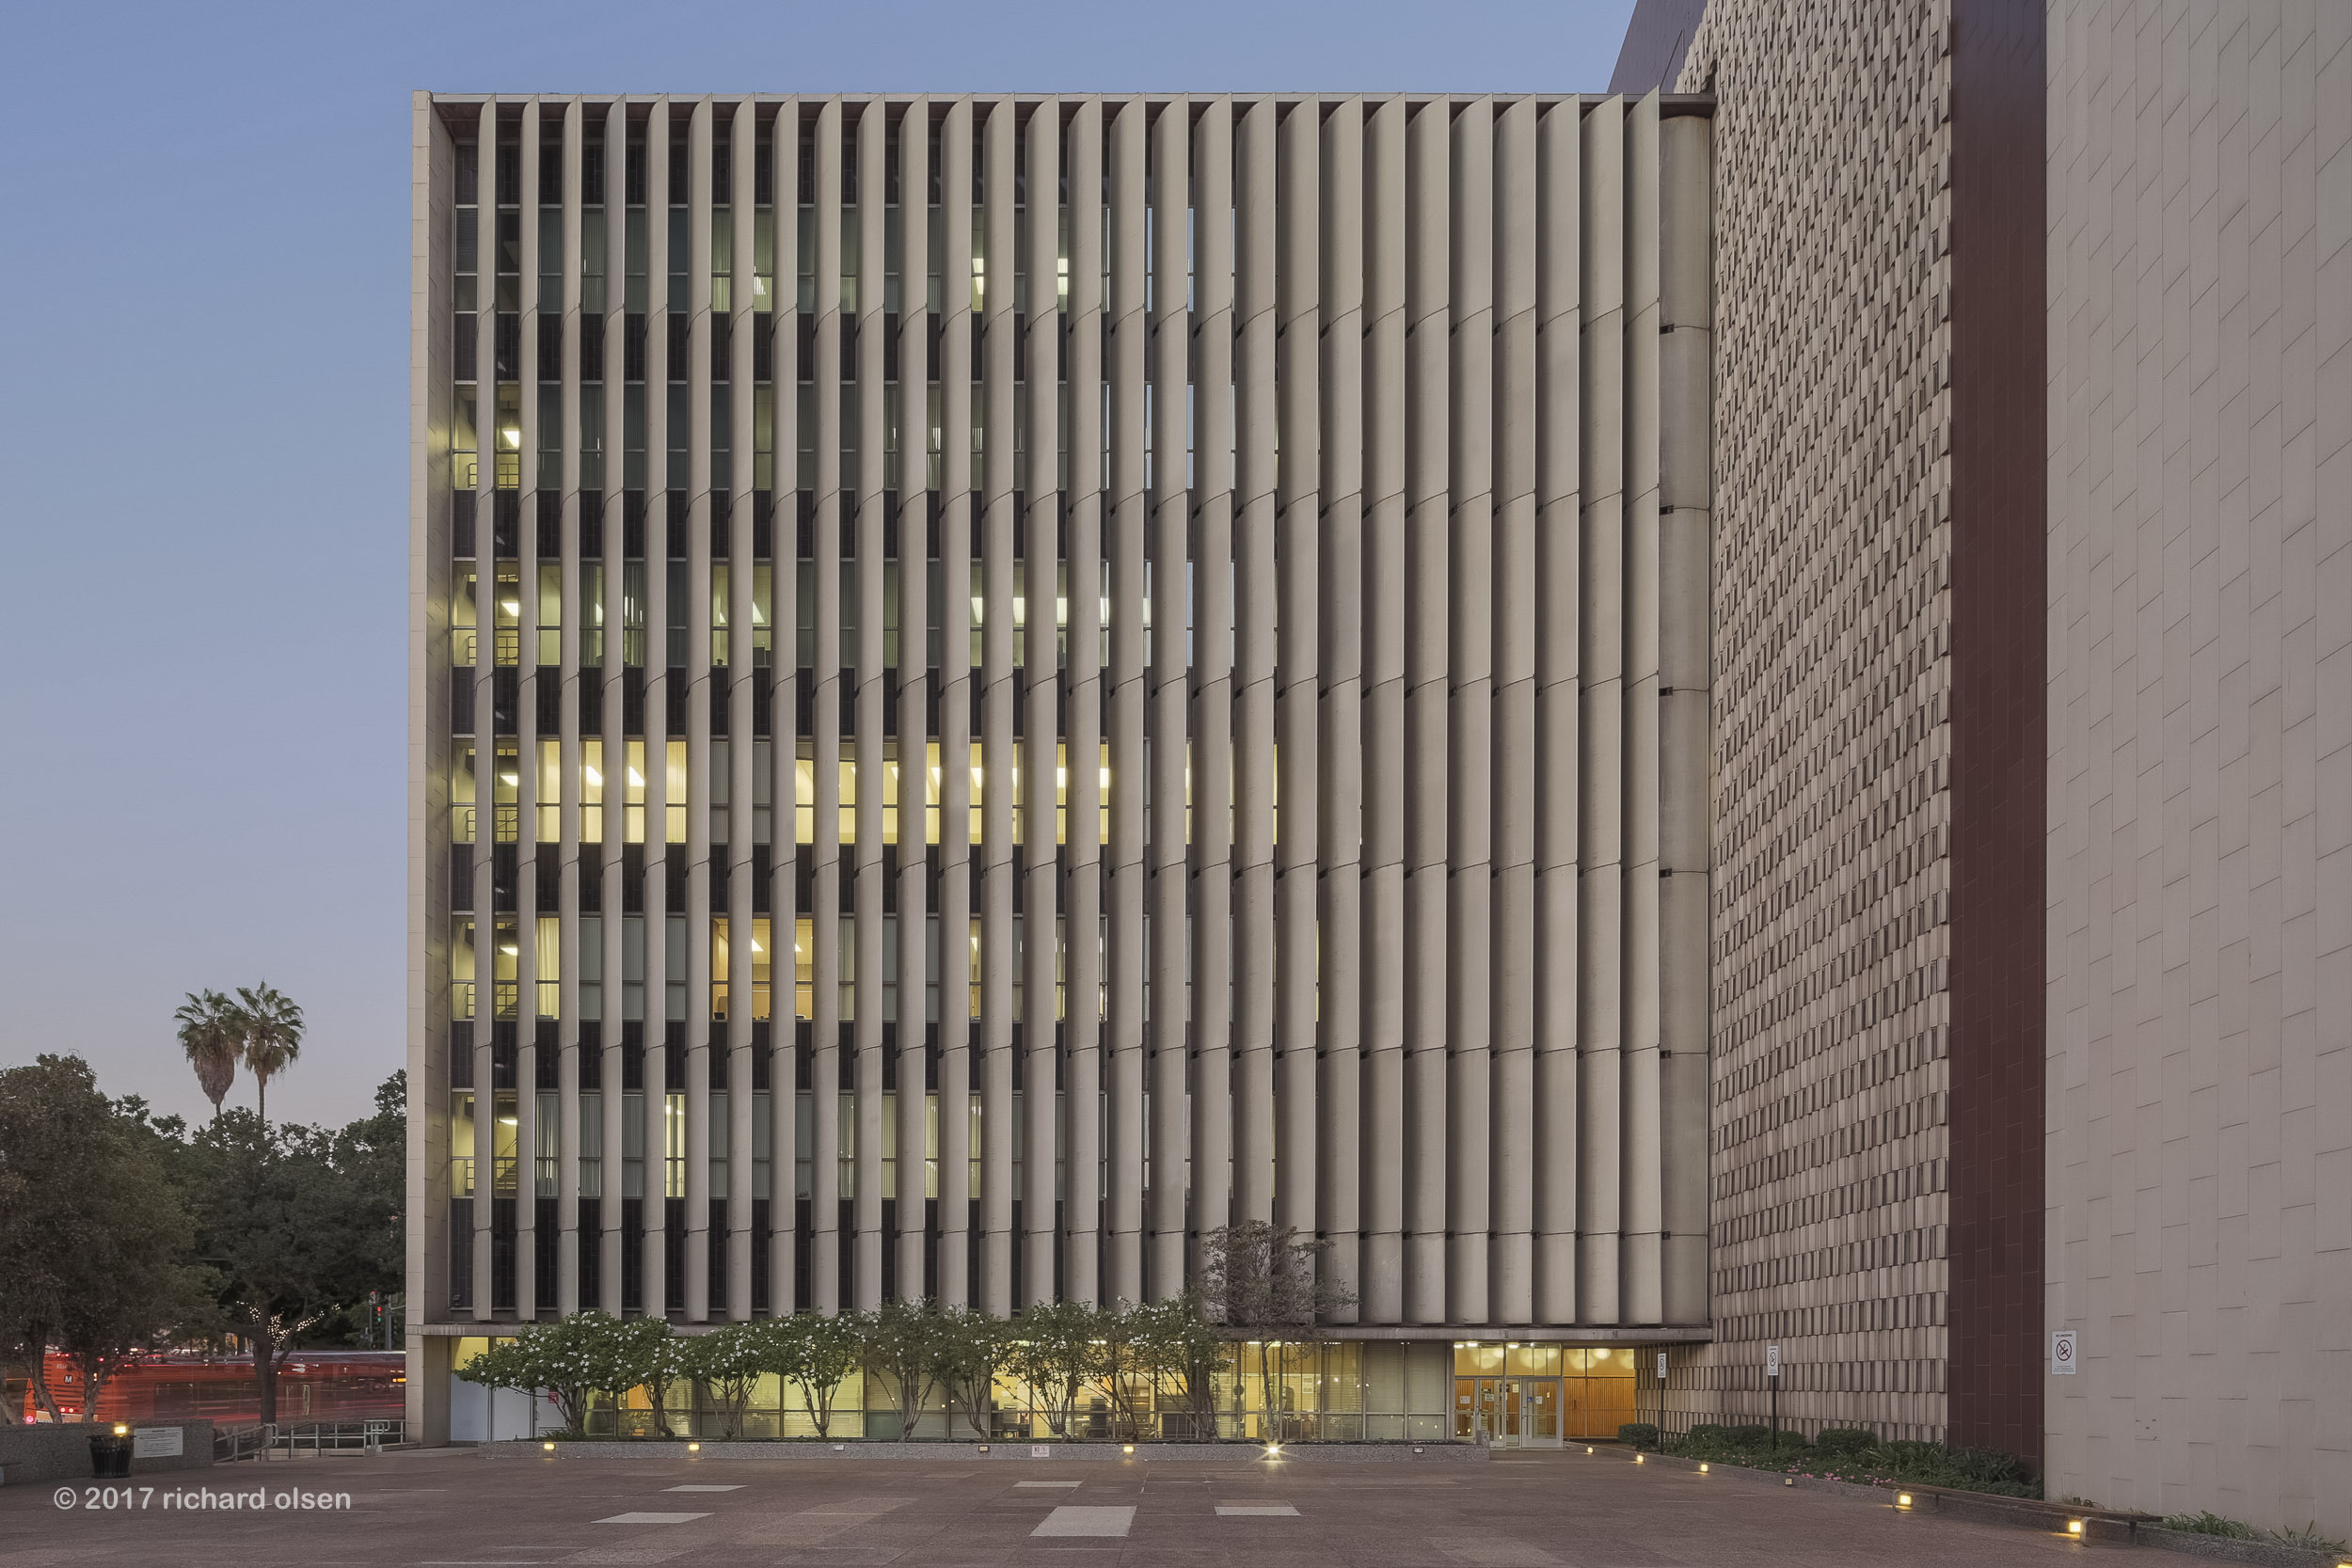 los angeles county hall of records, 1962. neutra & alexander, architects. los angeles.